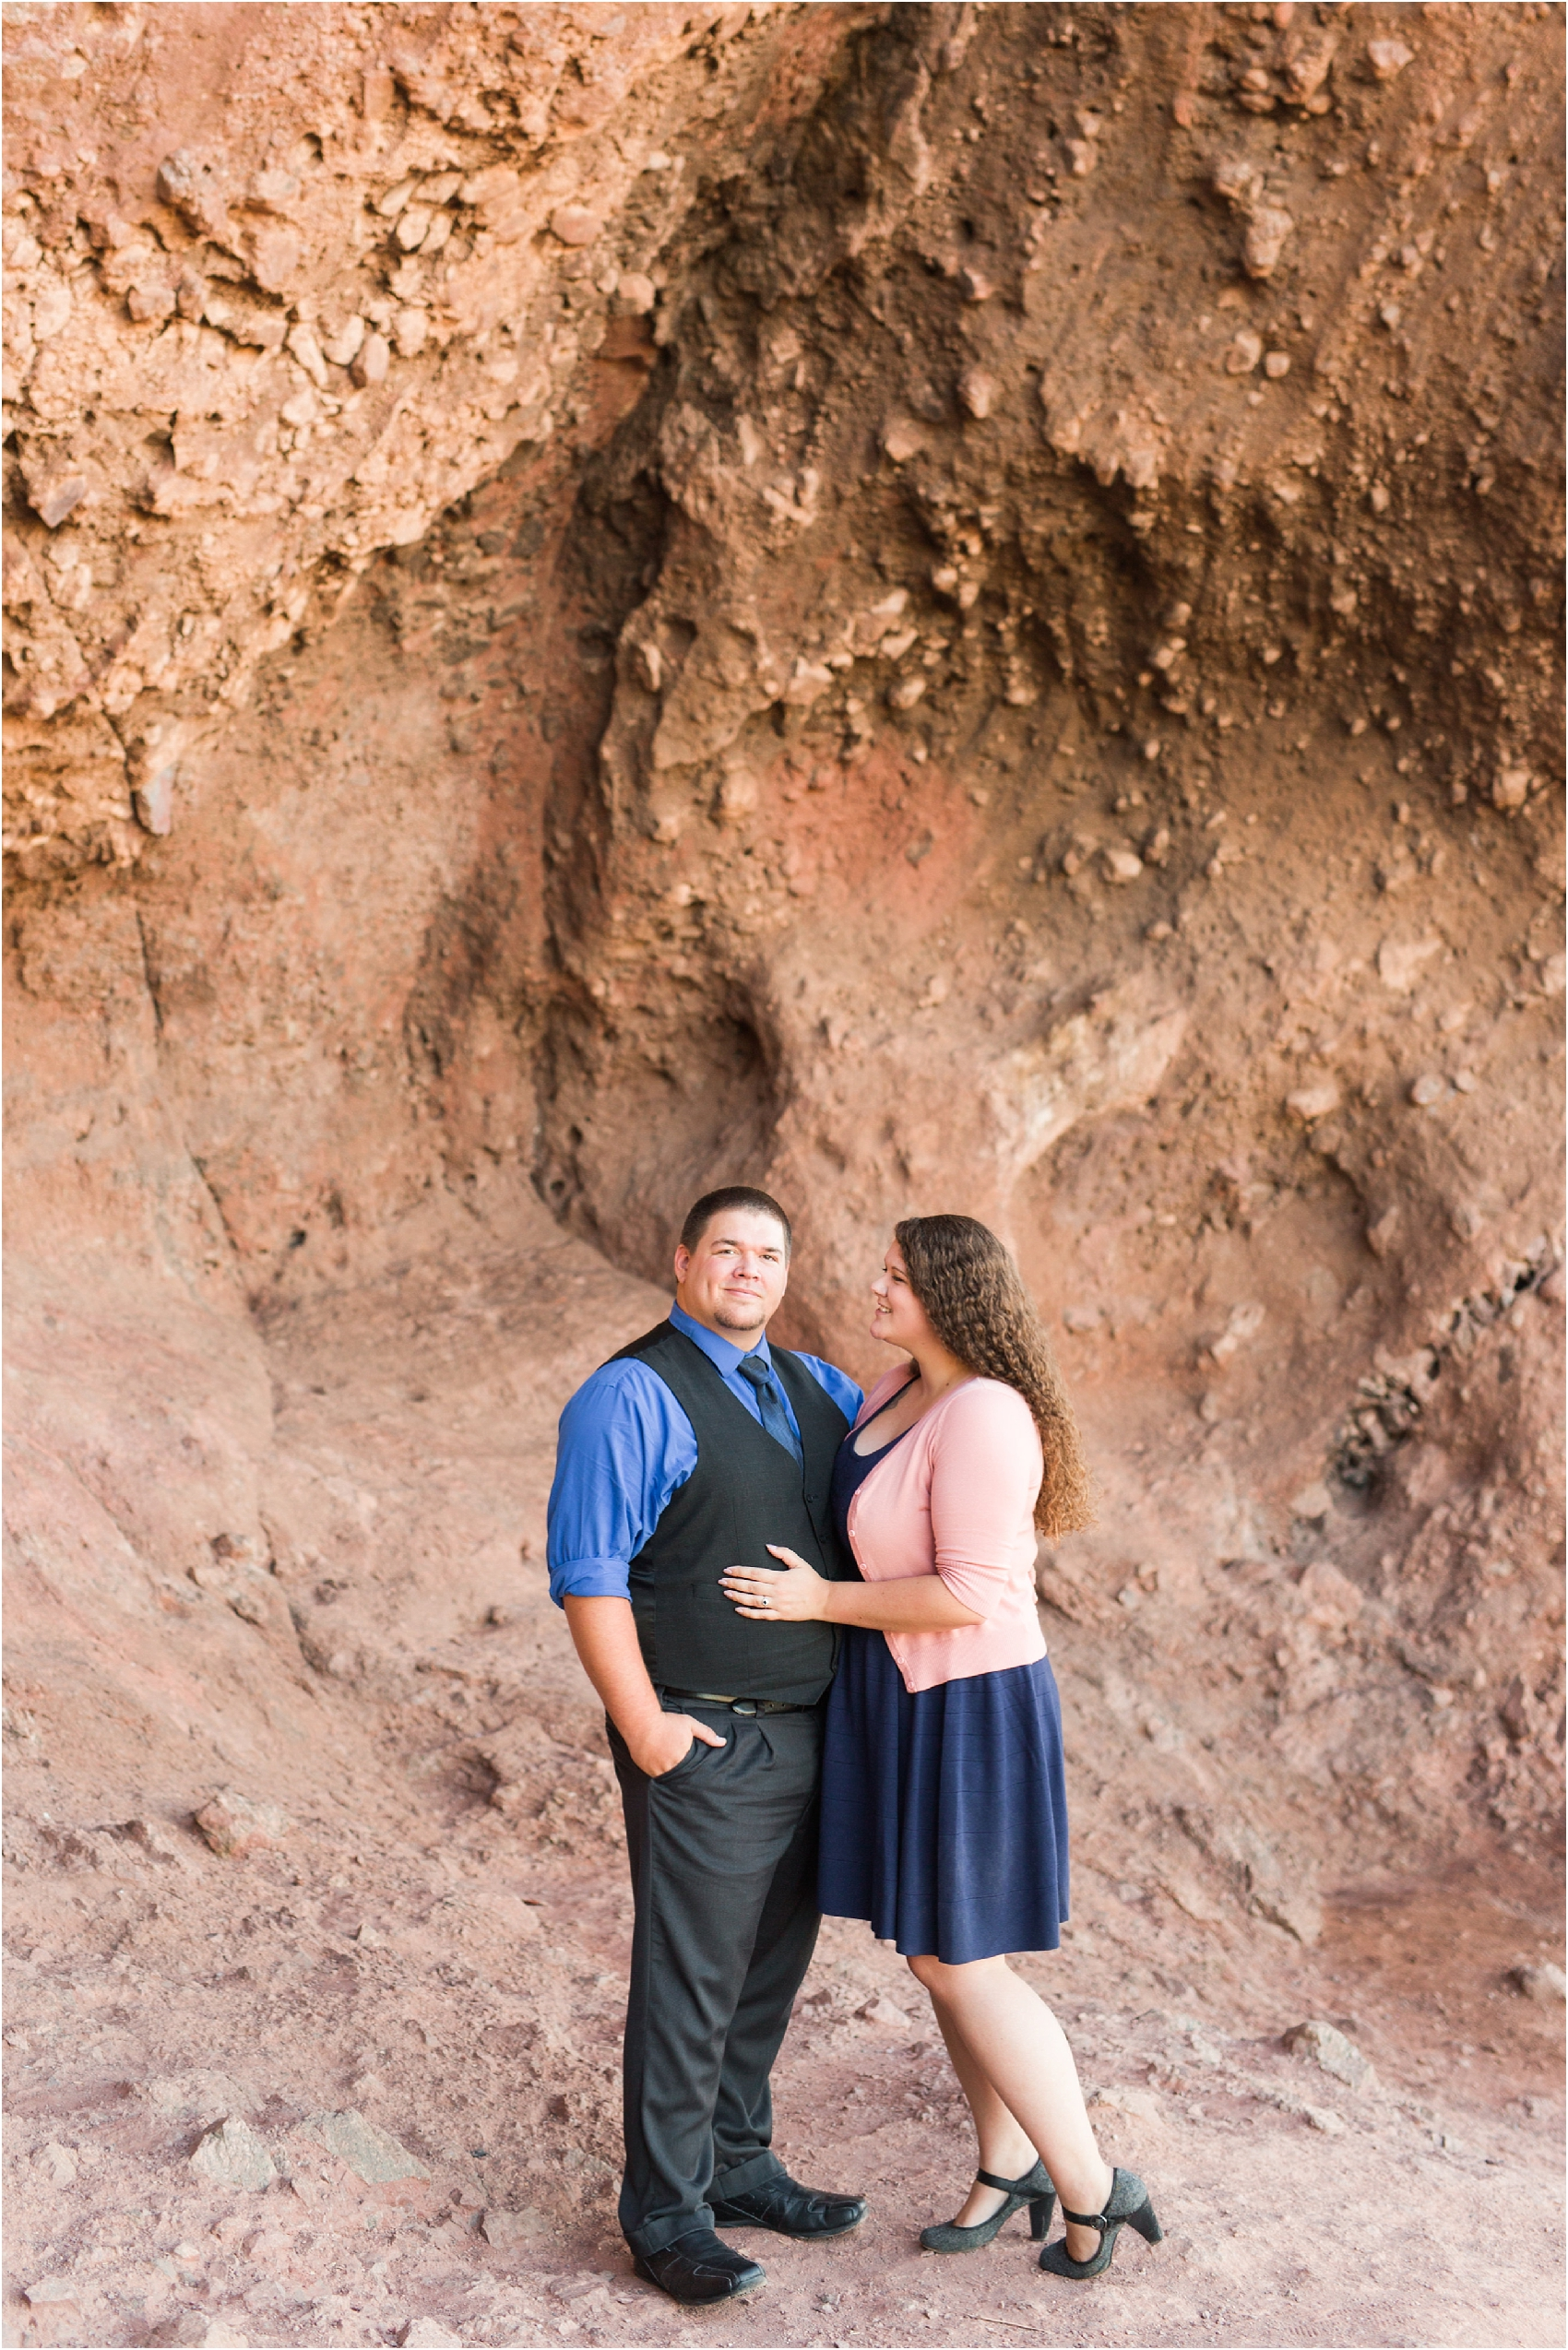 romantic-desert-engagement-photos-in-scottsdale-arizona-courtney-carolyn-photography-by-katelyn-james_0002.jpg